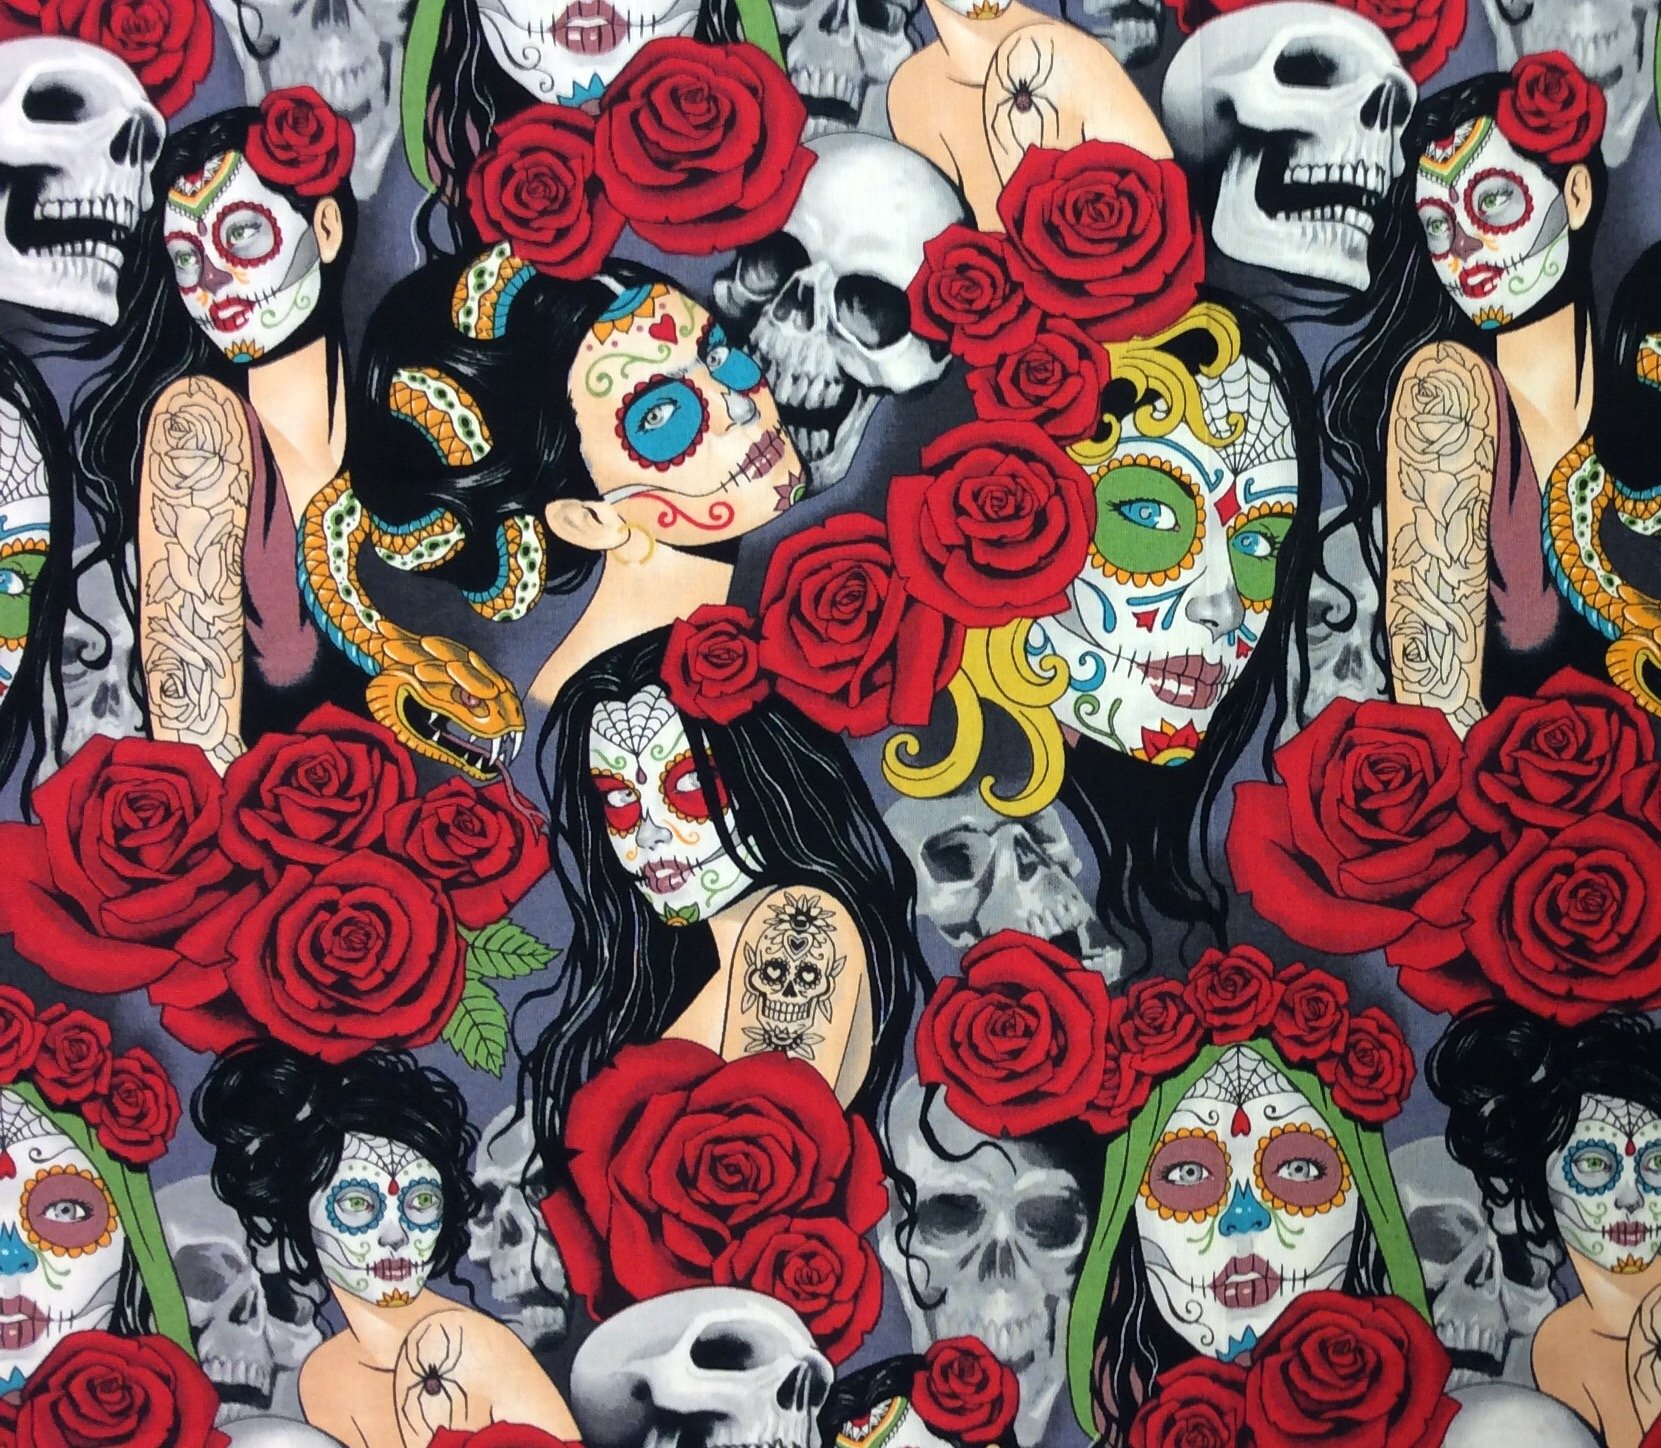 Las Elegantes Nocturna Sexy Pin Up Girls Goth Steampunk Skull Tattoo Cotton Quilt Fabric AH274